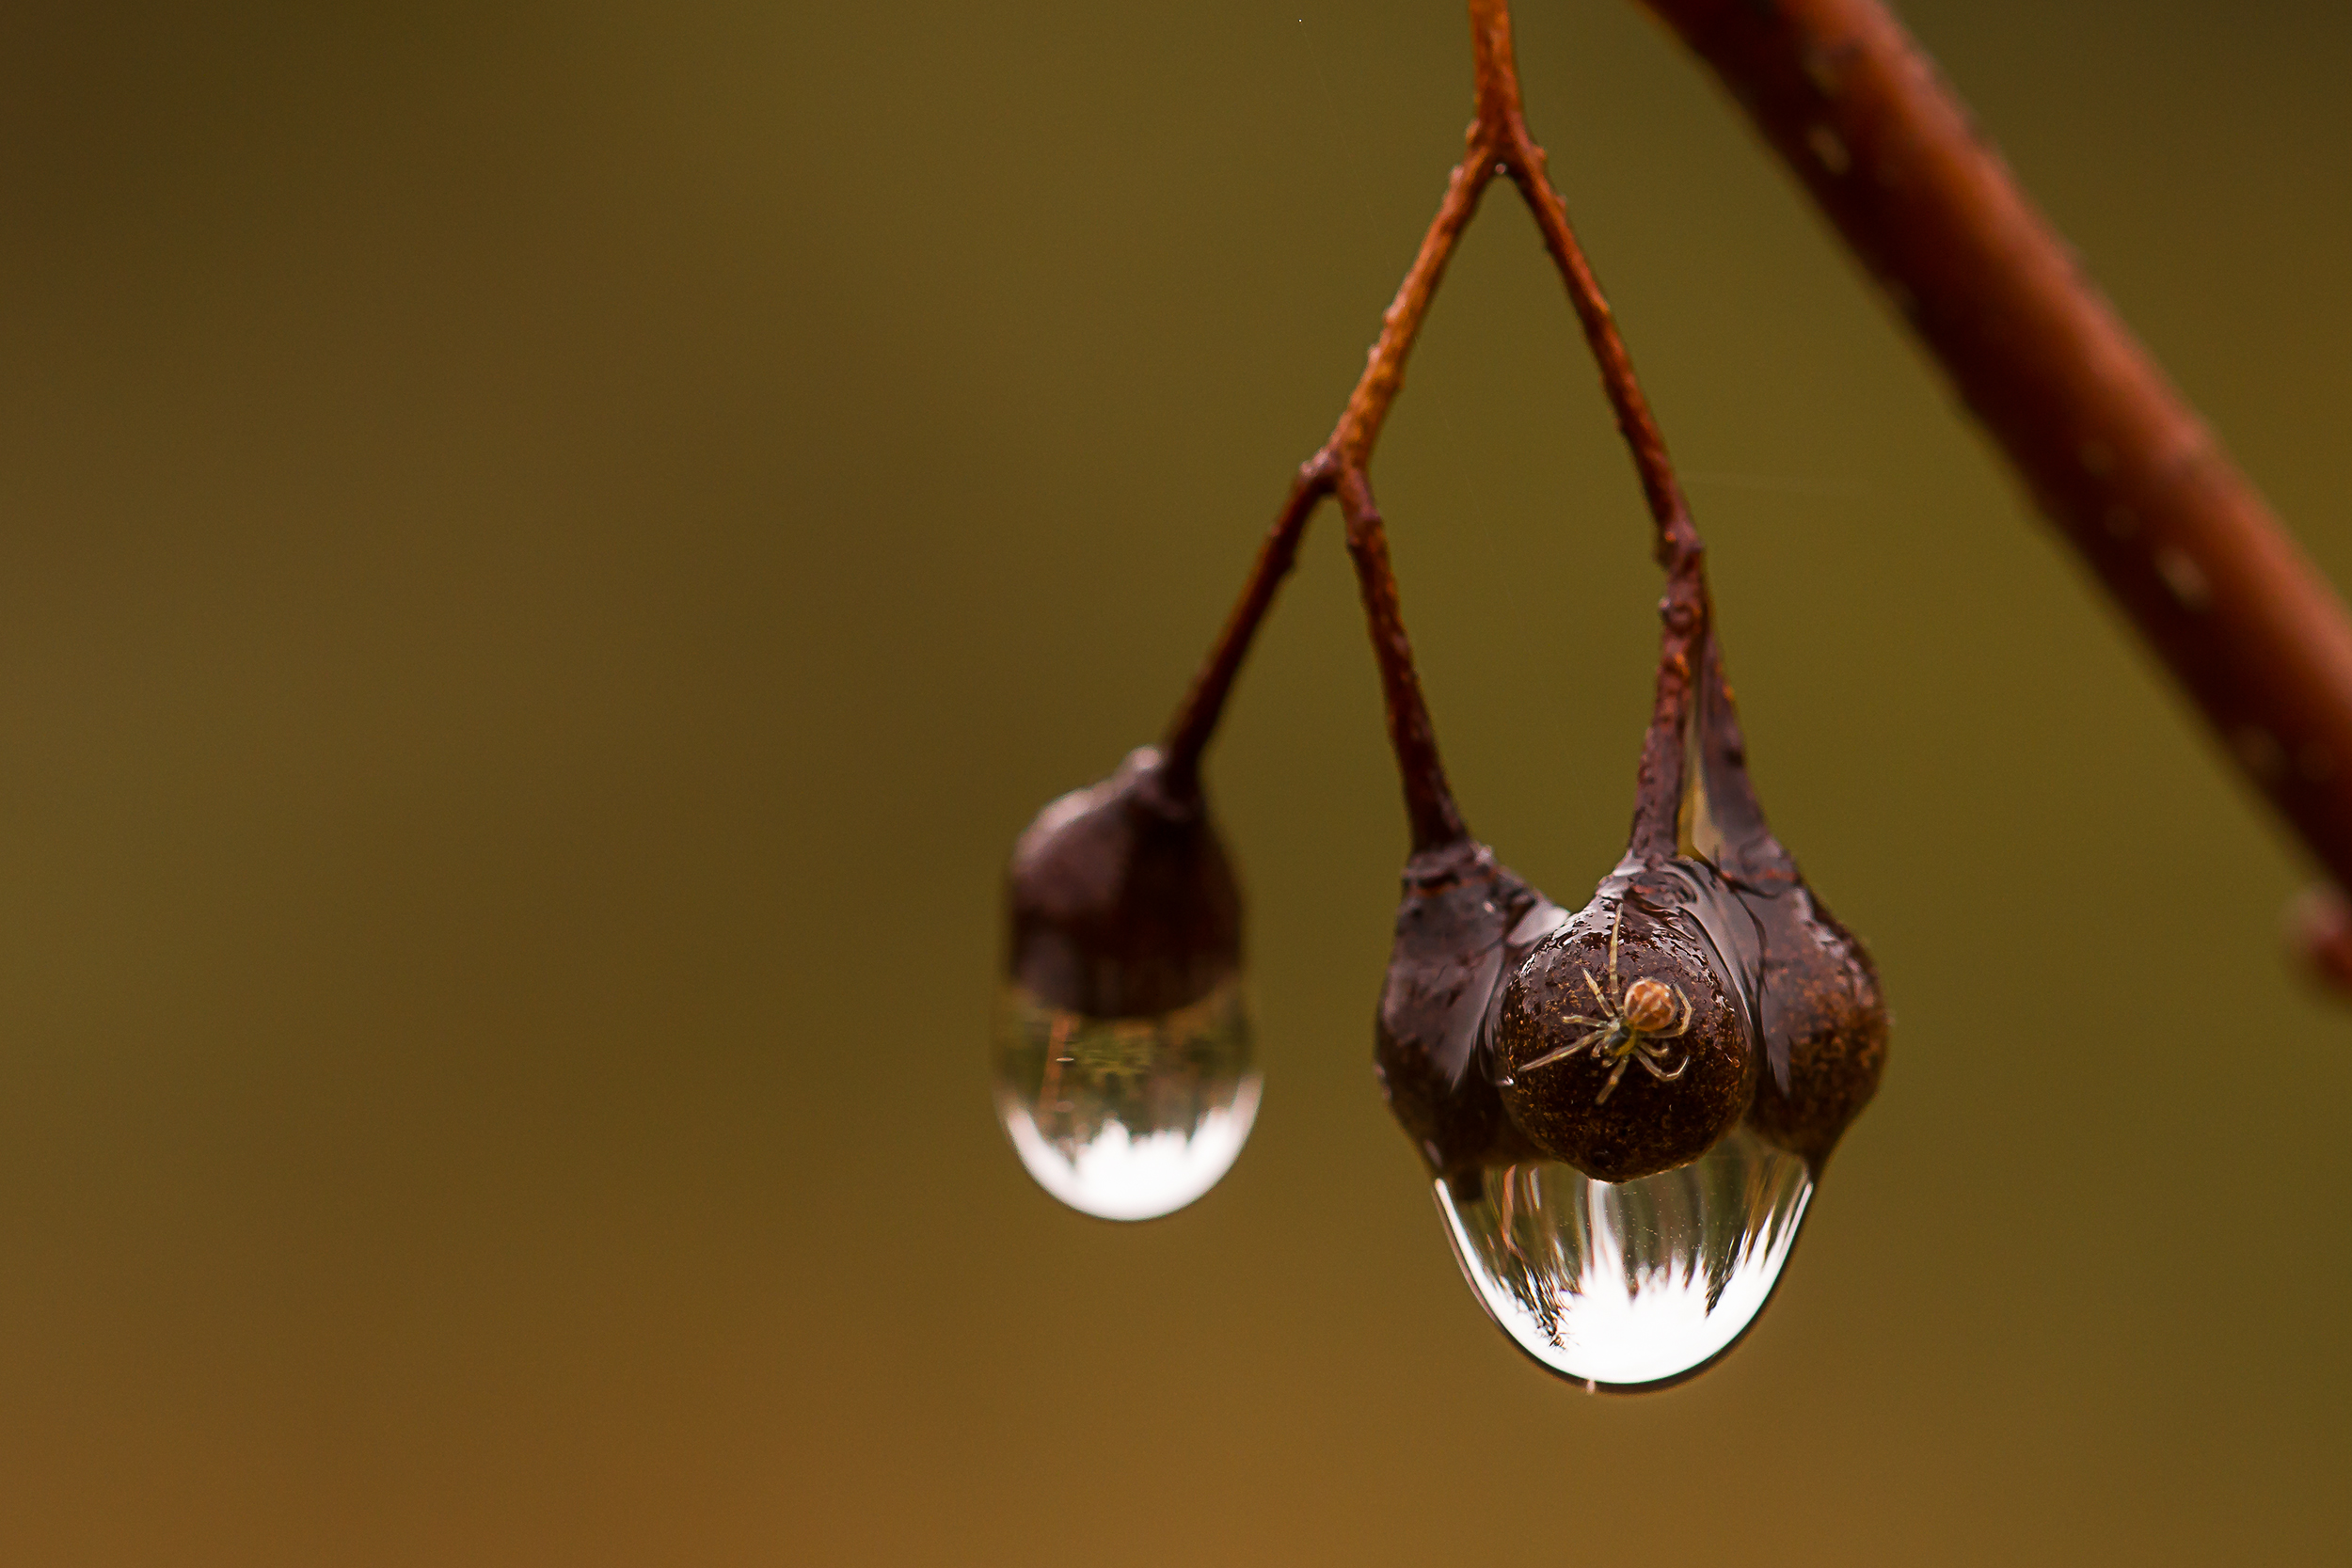 waterdrop and spider